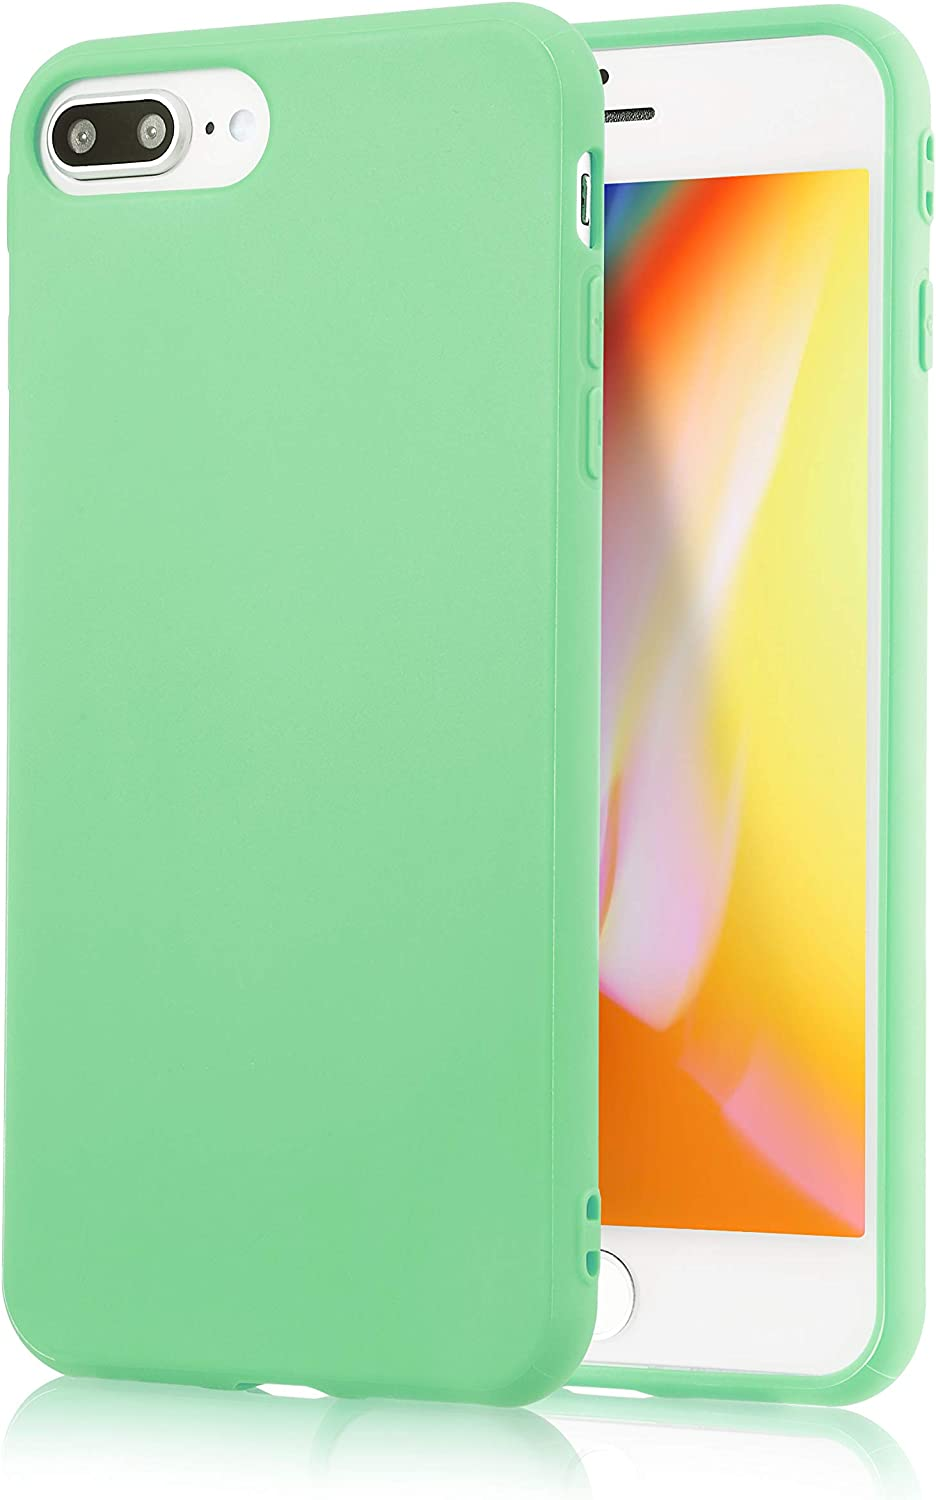 iPhone 7 Plus Mint Case/iPhone 8 Plus Mint Case, technext020 Shockproof Ultra Slim Fit Silicone TPU Soft Gel Rubber Cover Shock Resistance Protective ...